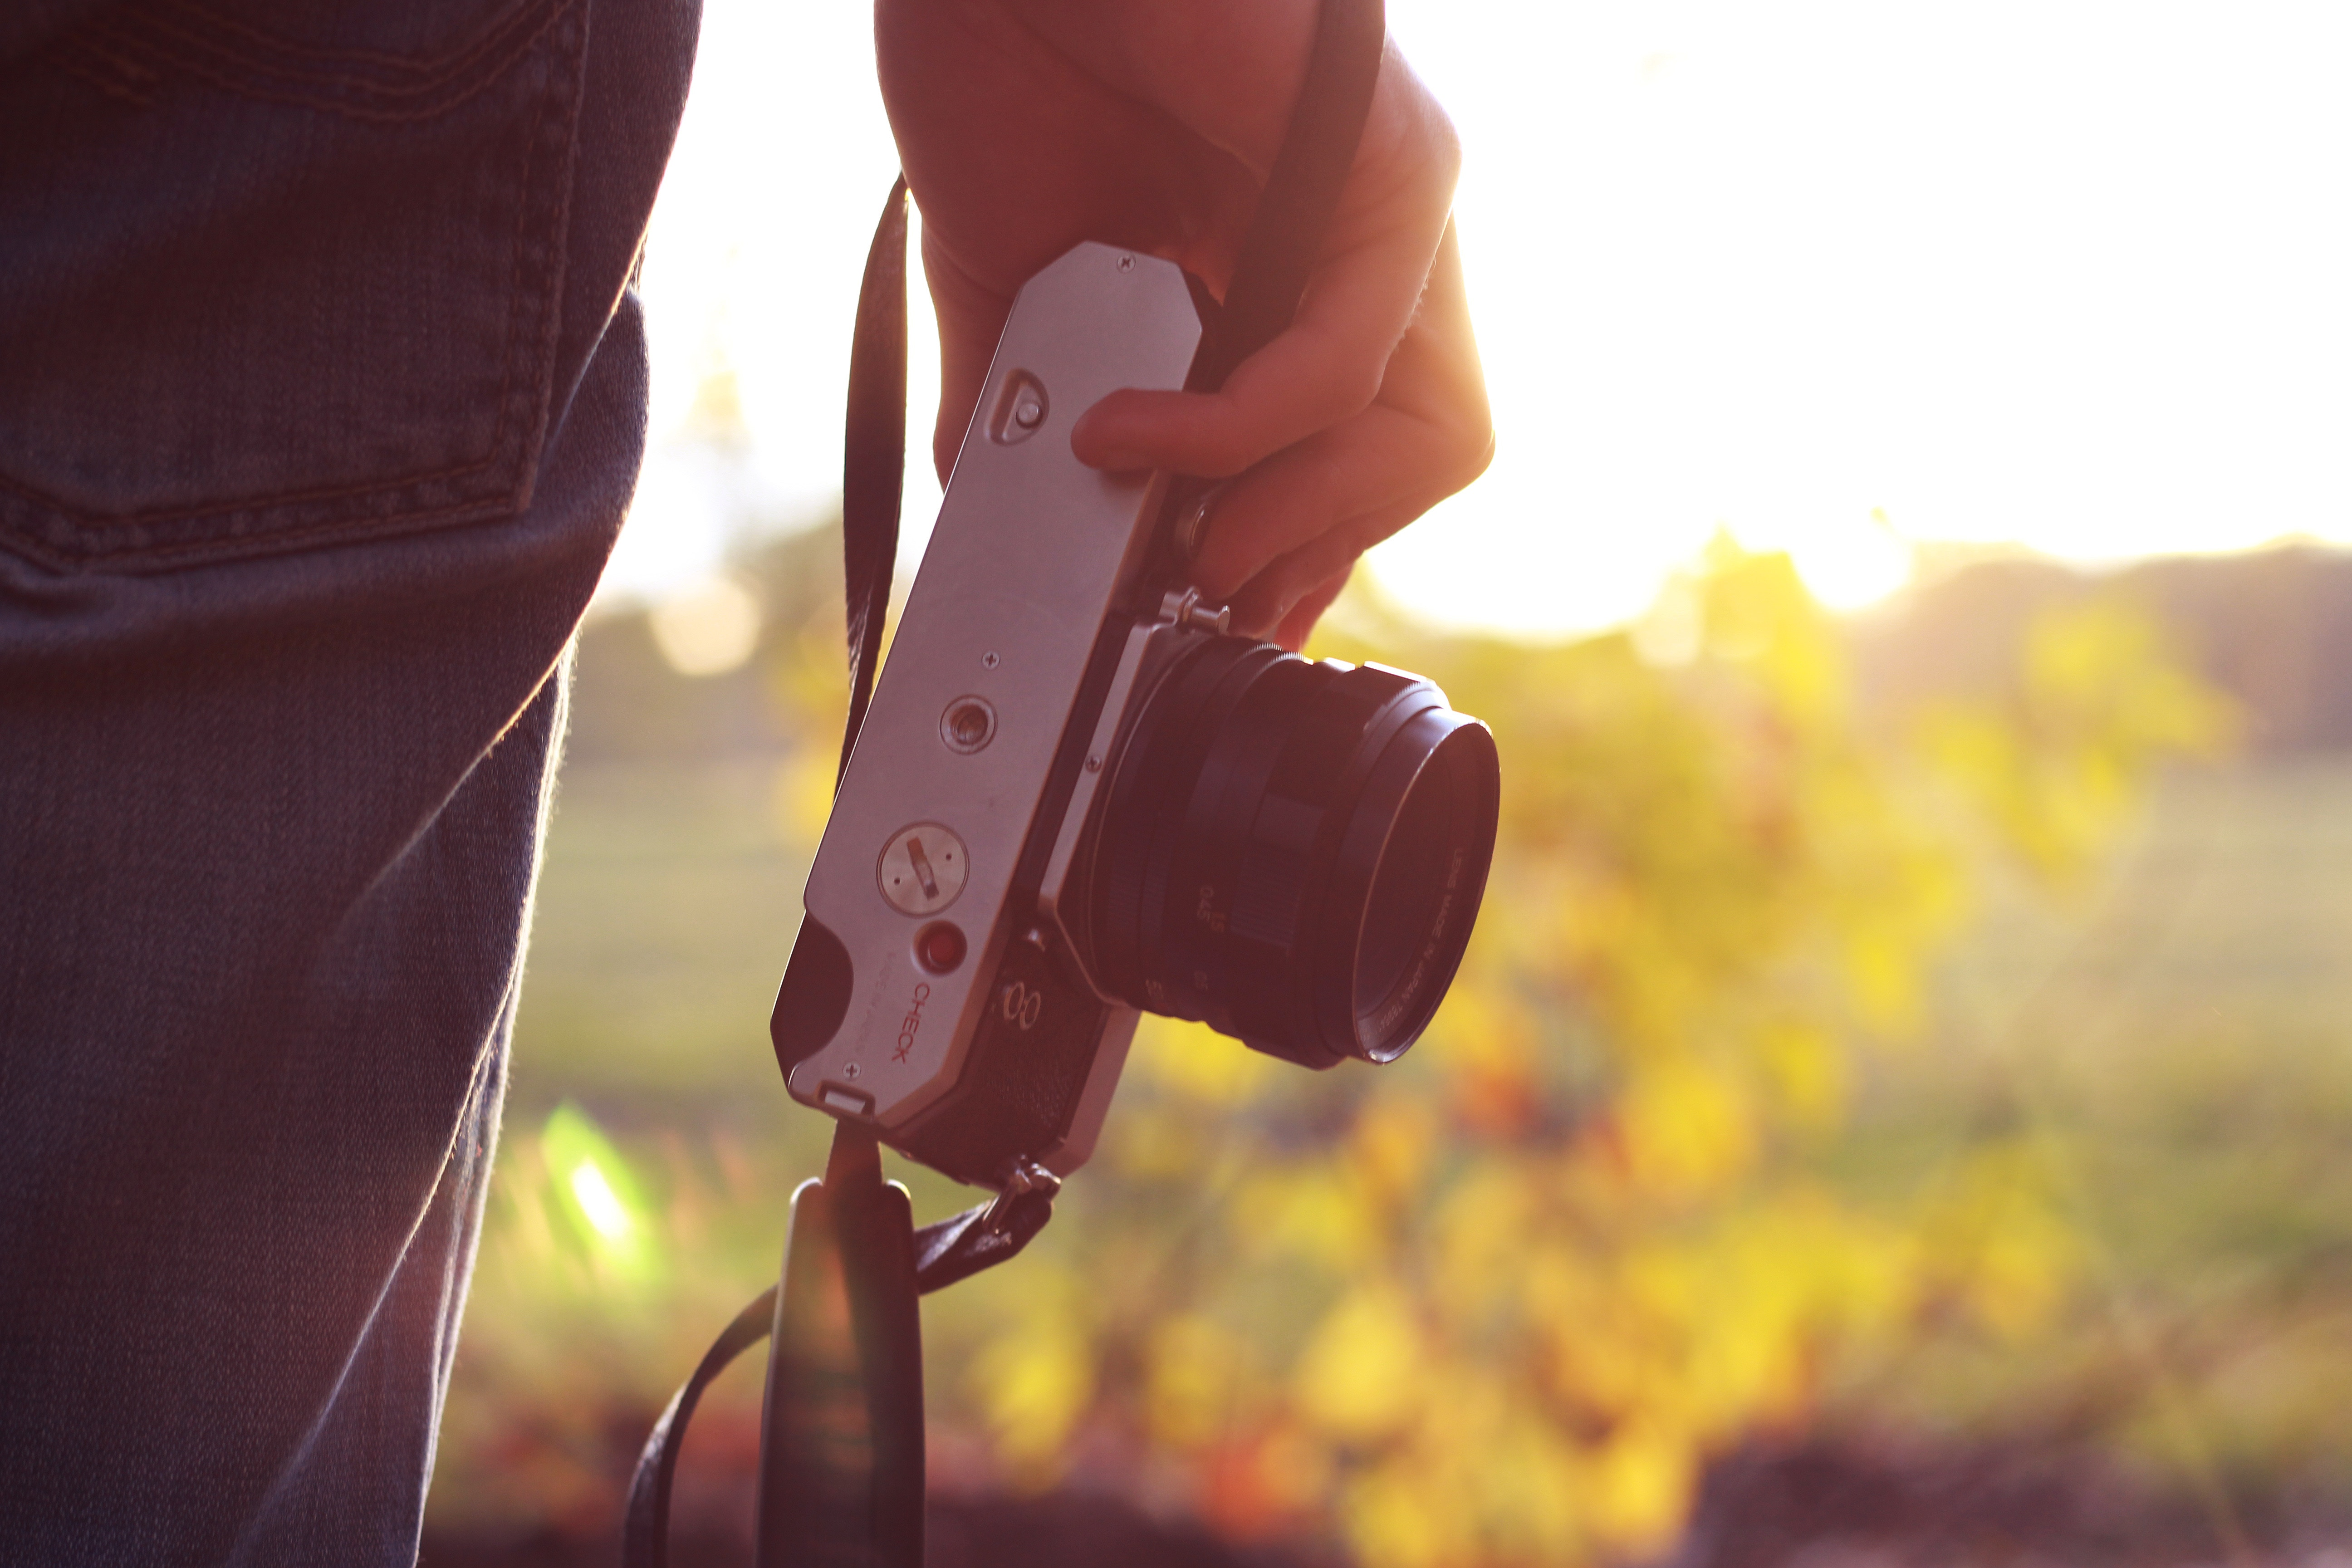 Featured Image for: 5 Ways freelance photographers can find new clients